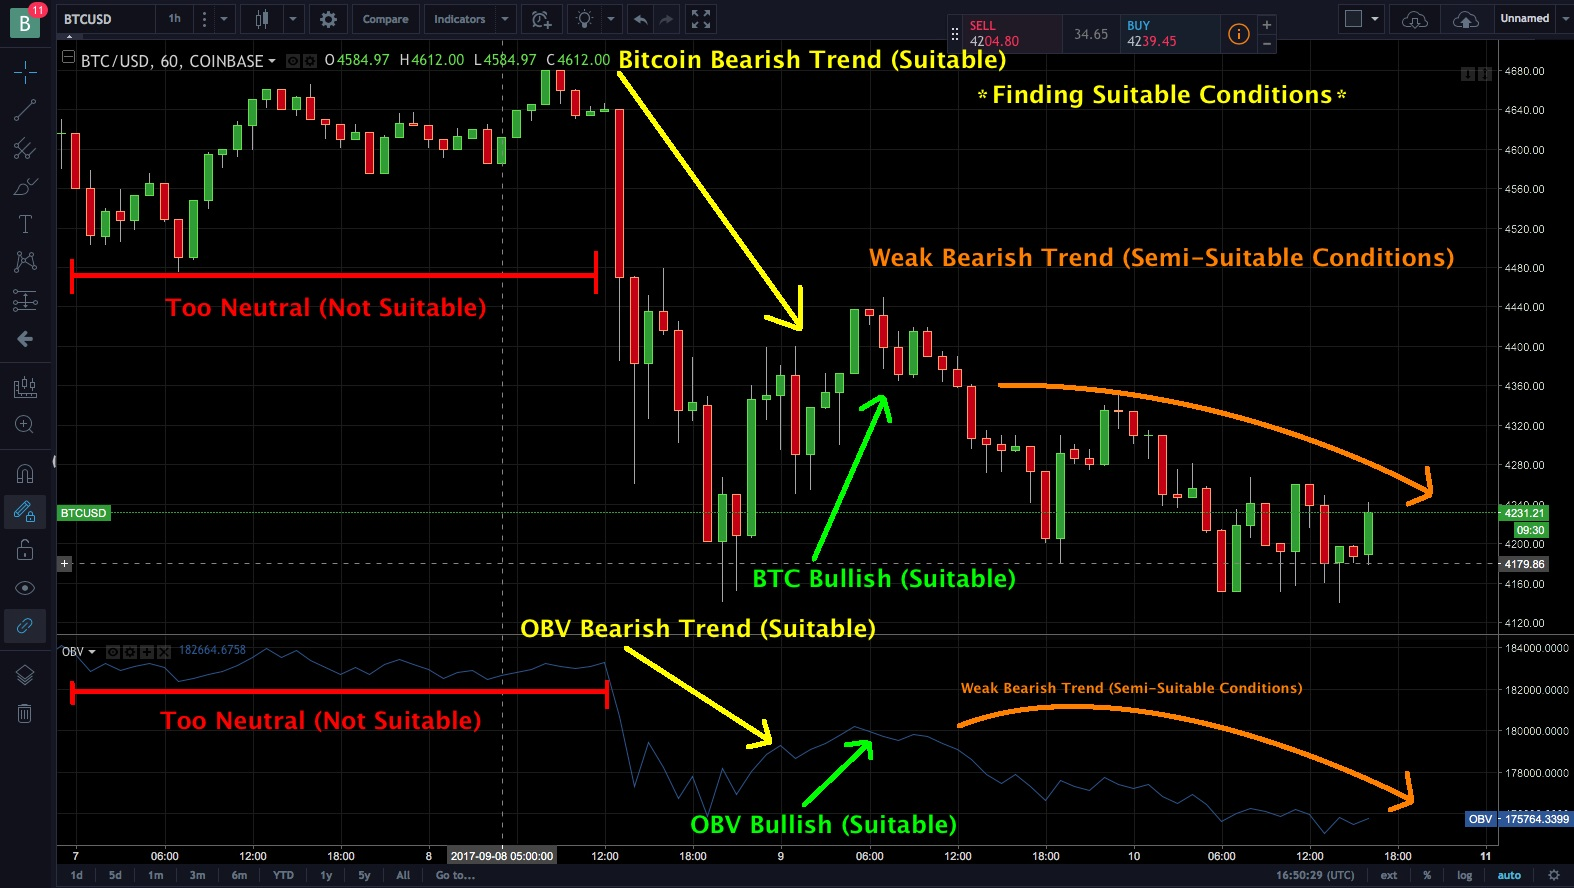 Bitcoin Strategy - Suitable Conditions